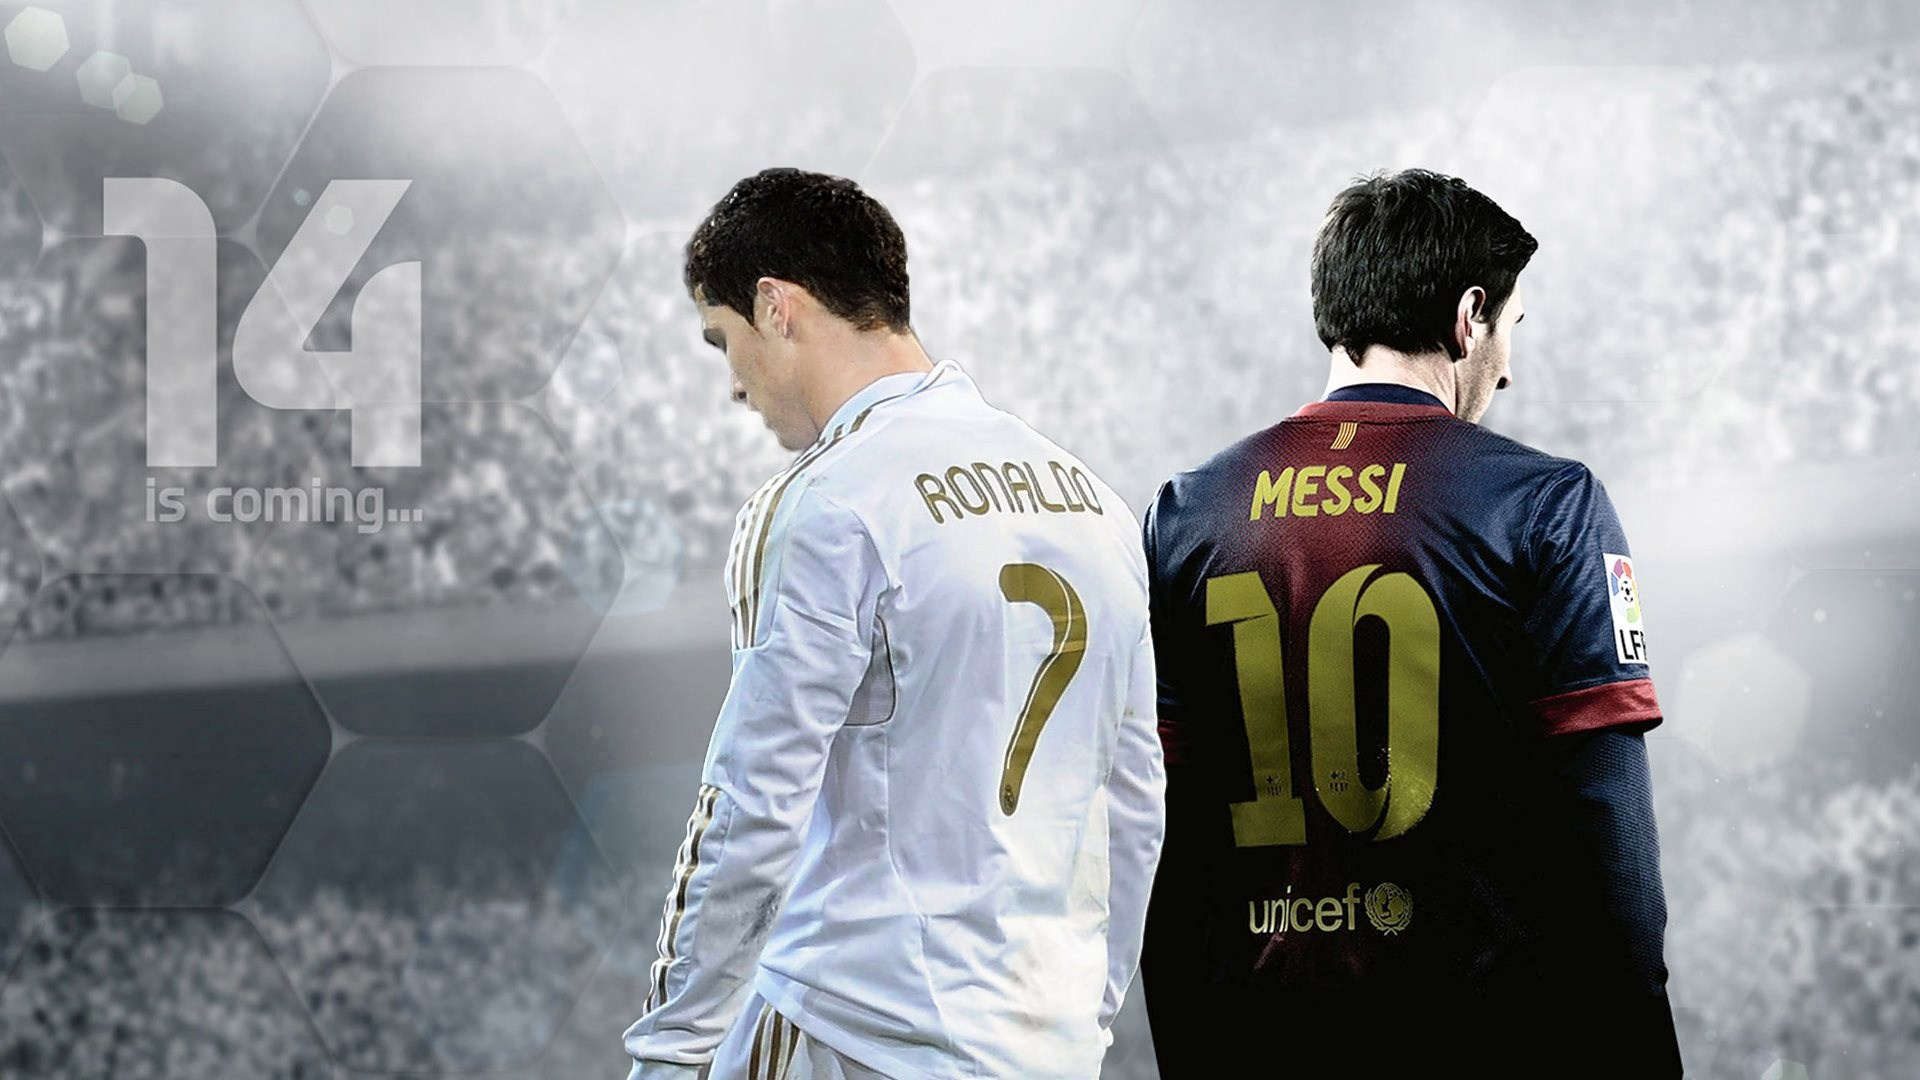 14 fifa 14 hd wallpapers background images wallpaper abyss voltagebd Images